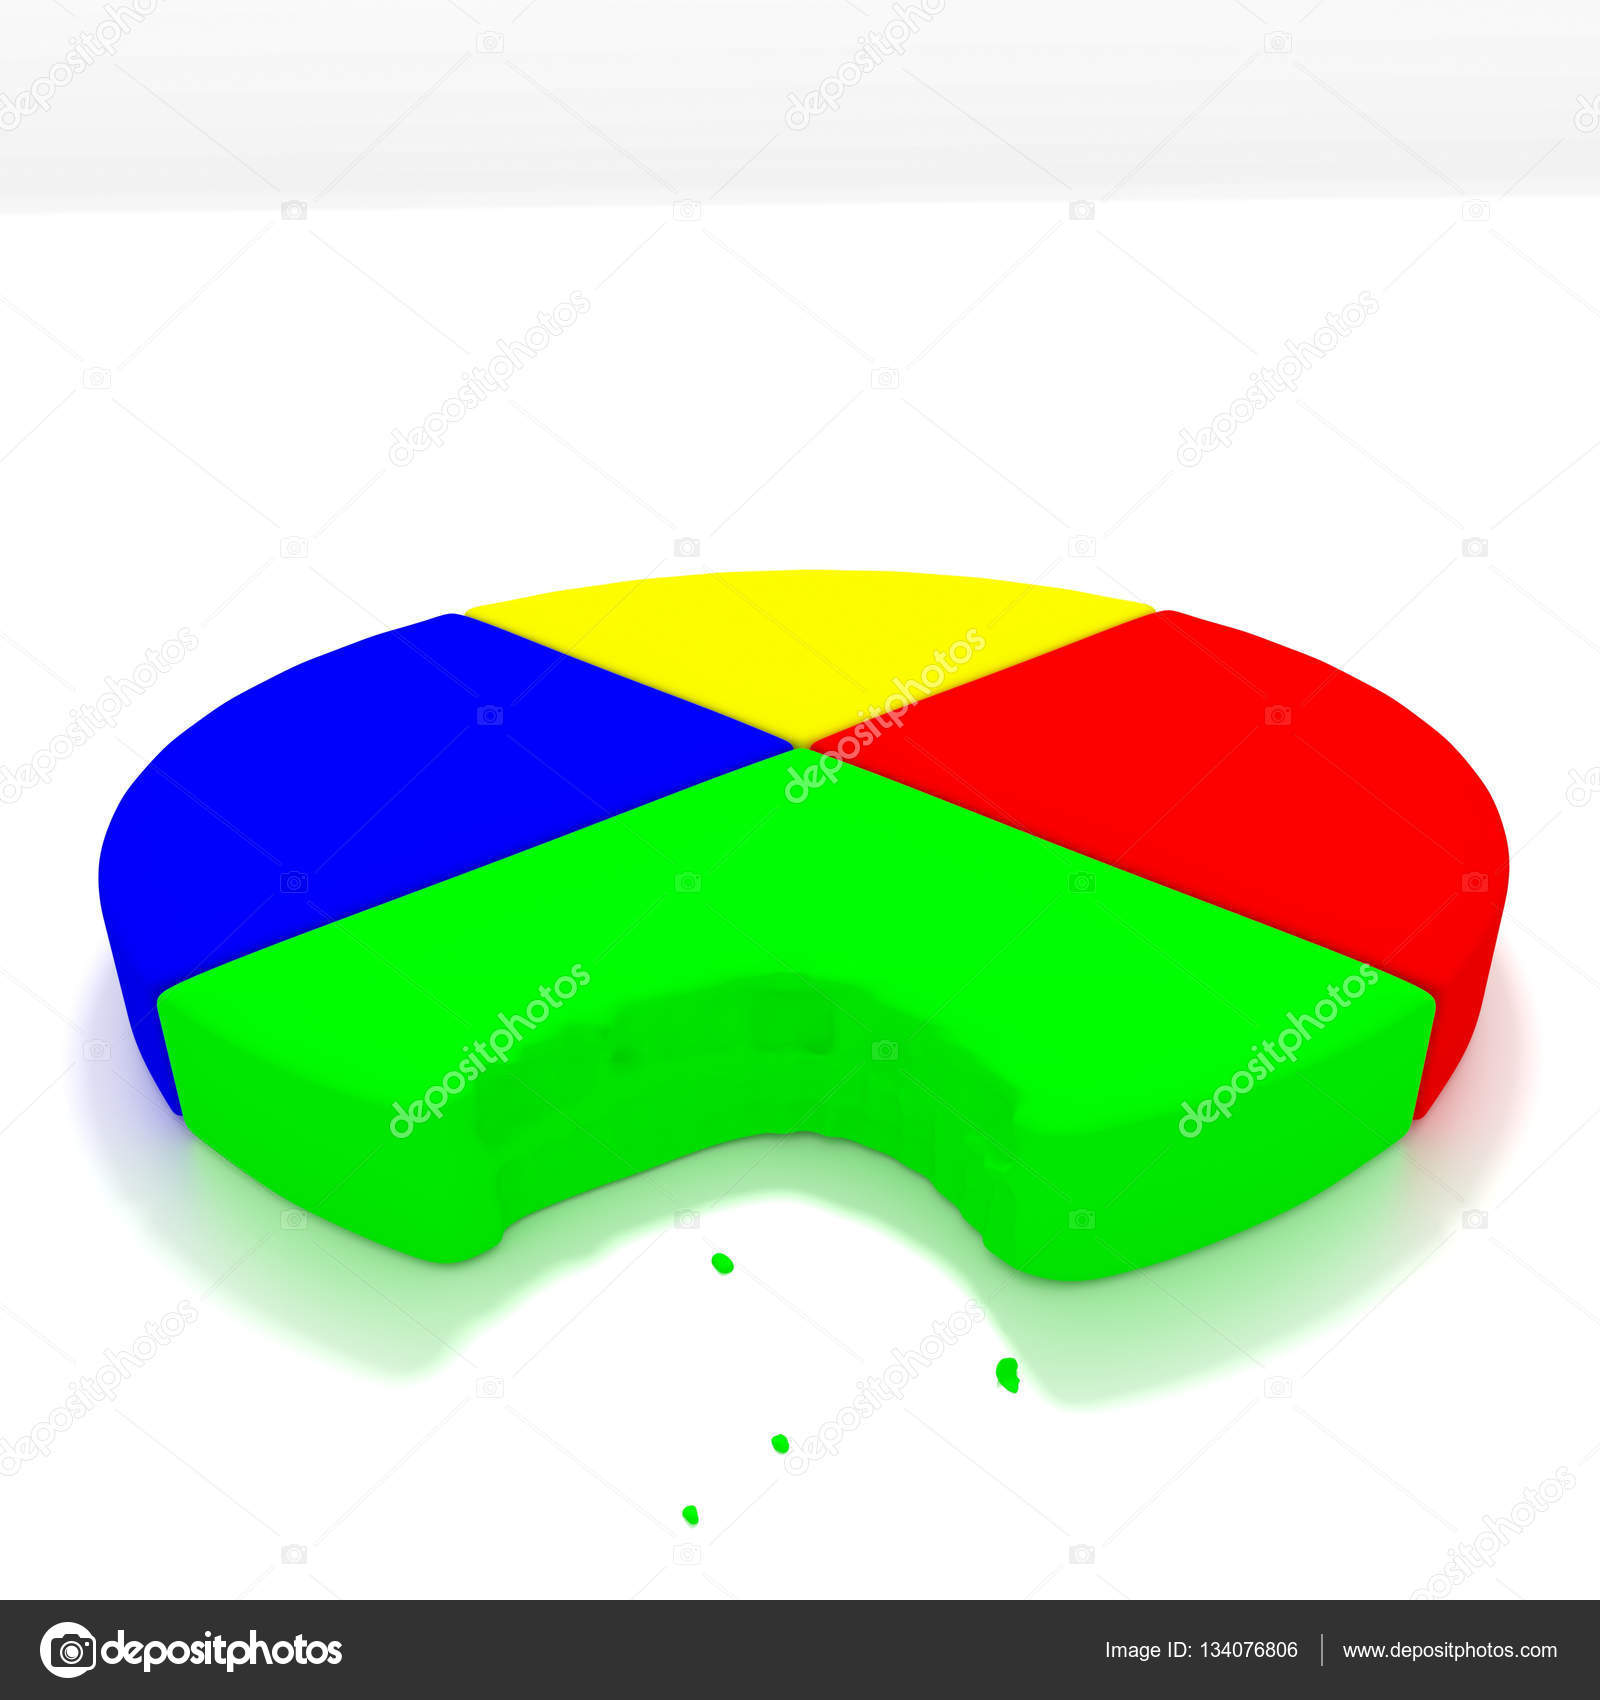 Pie chart bite stock photo matt32767 134076806 a 3d render of a pie chart one a reflective white background with a bite taken out of it photo by matt32767 nvjuhfo Choice Image